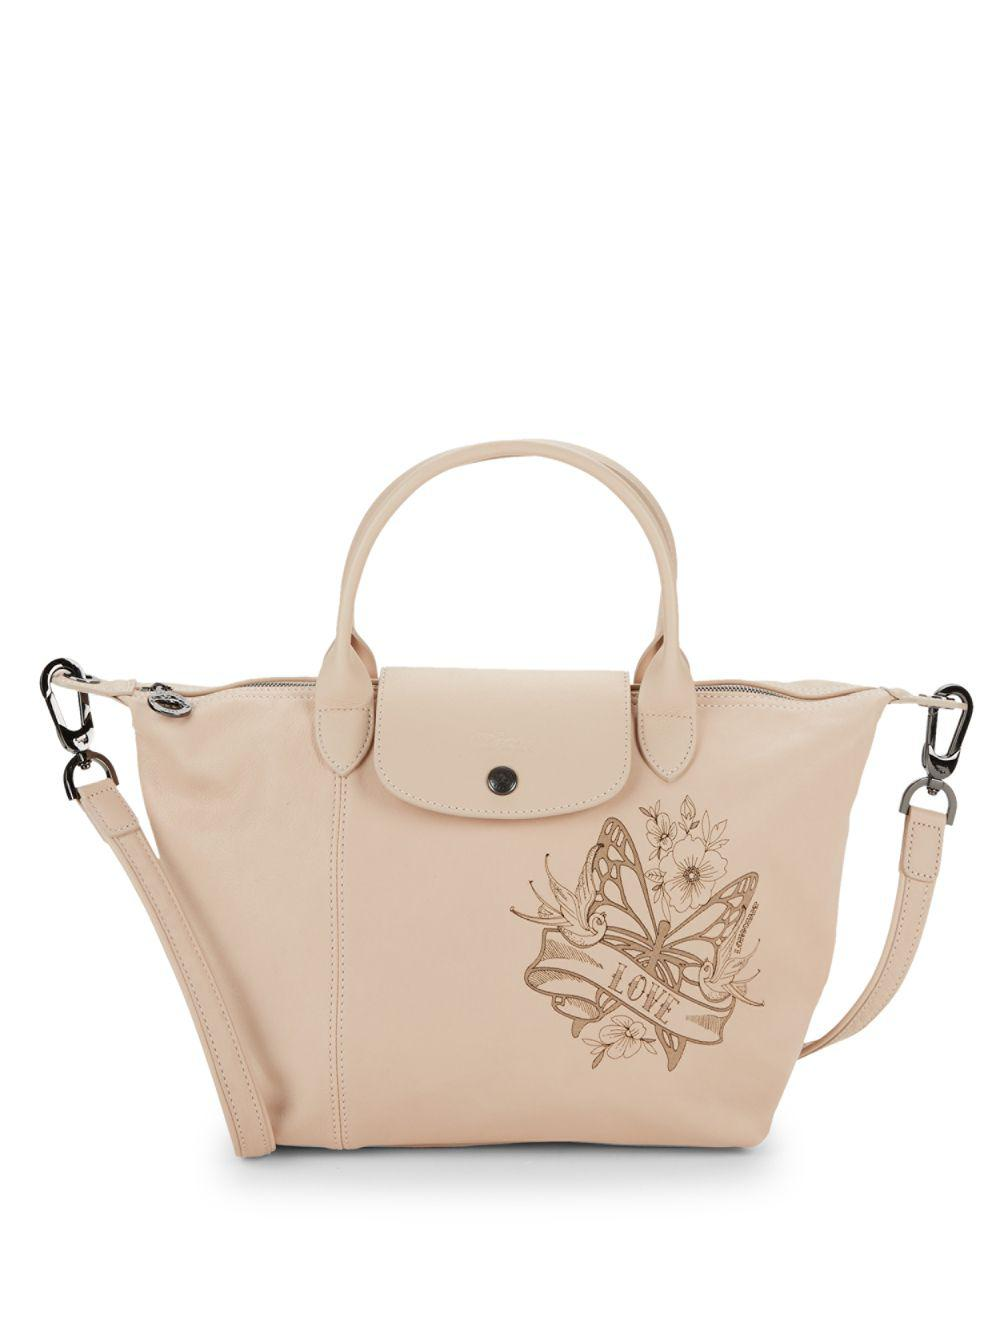 25701039d42f Longchamp Small Le Pliage Cuir Leather Top Handle Bag in Natural - Lyst